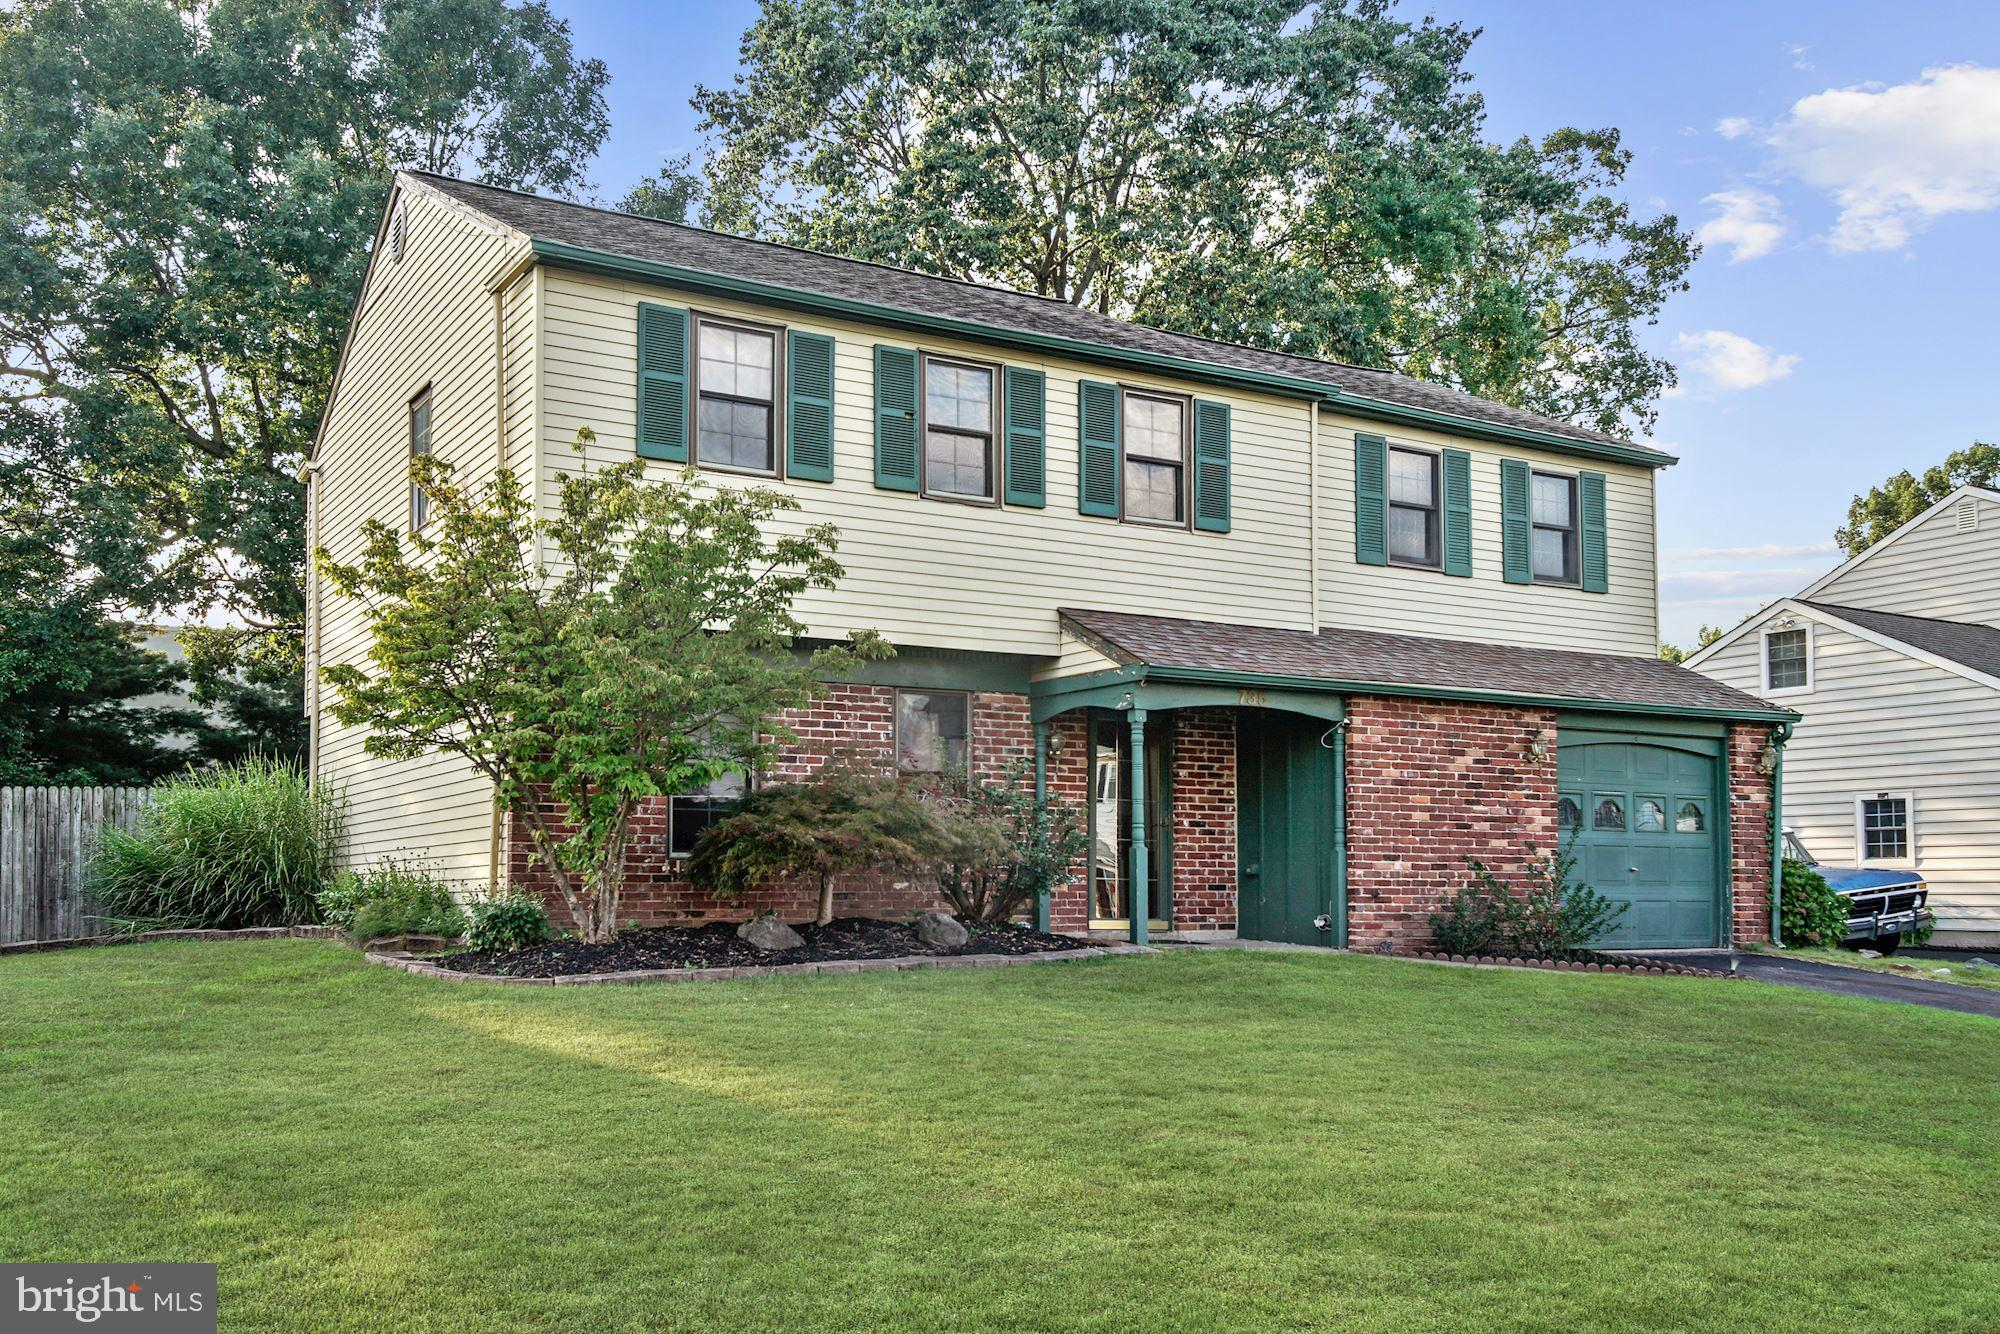 735 FAIRBRIDGE DRIVE, FAIRLESS HILLS, PA 19030